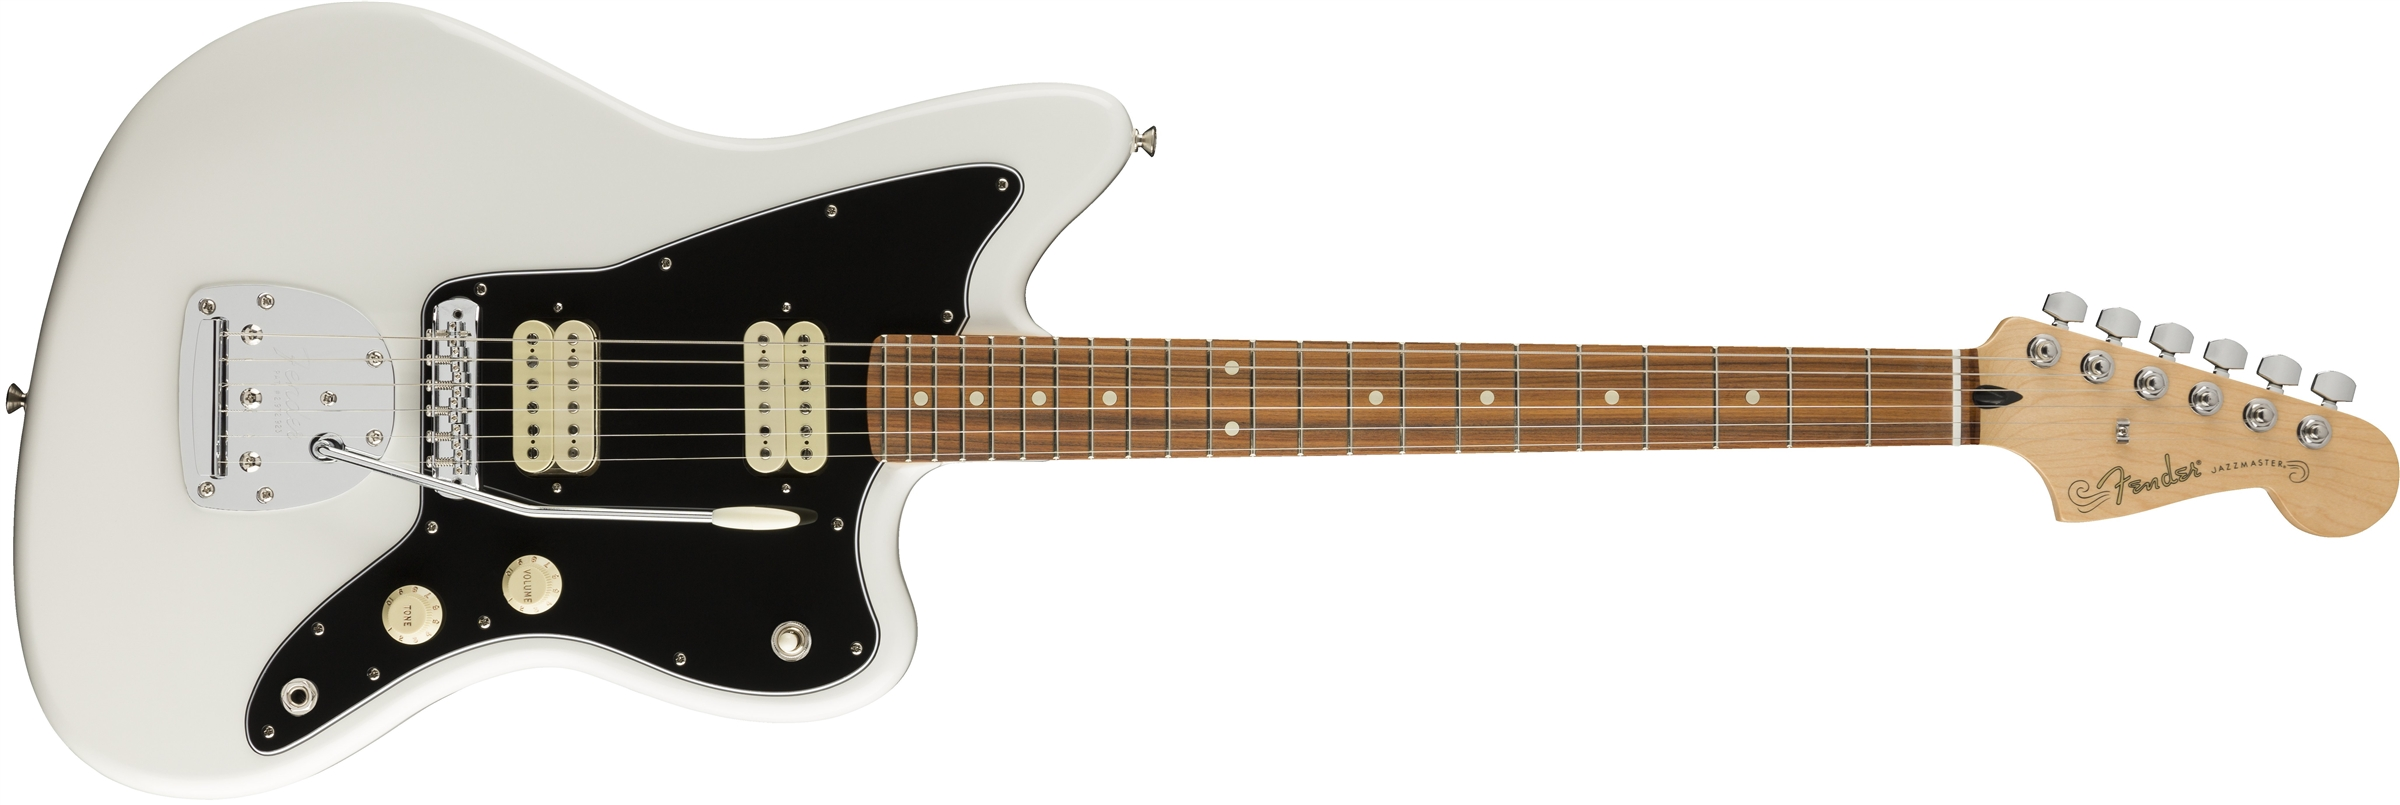 Fender Player Series Jazzmaster PF PWT